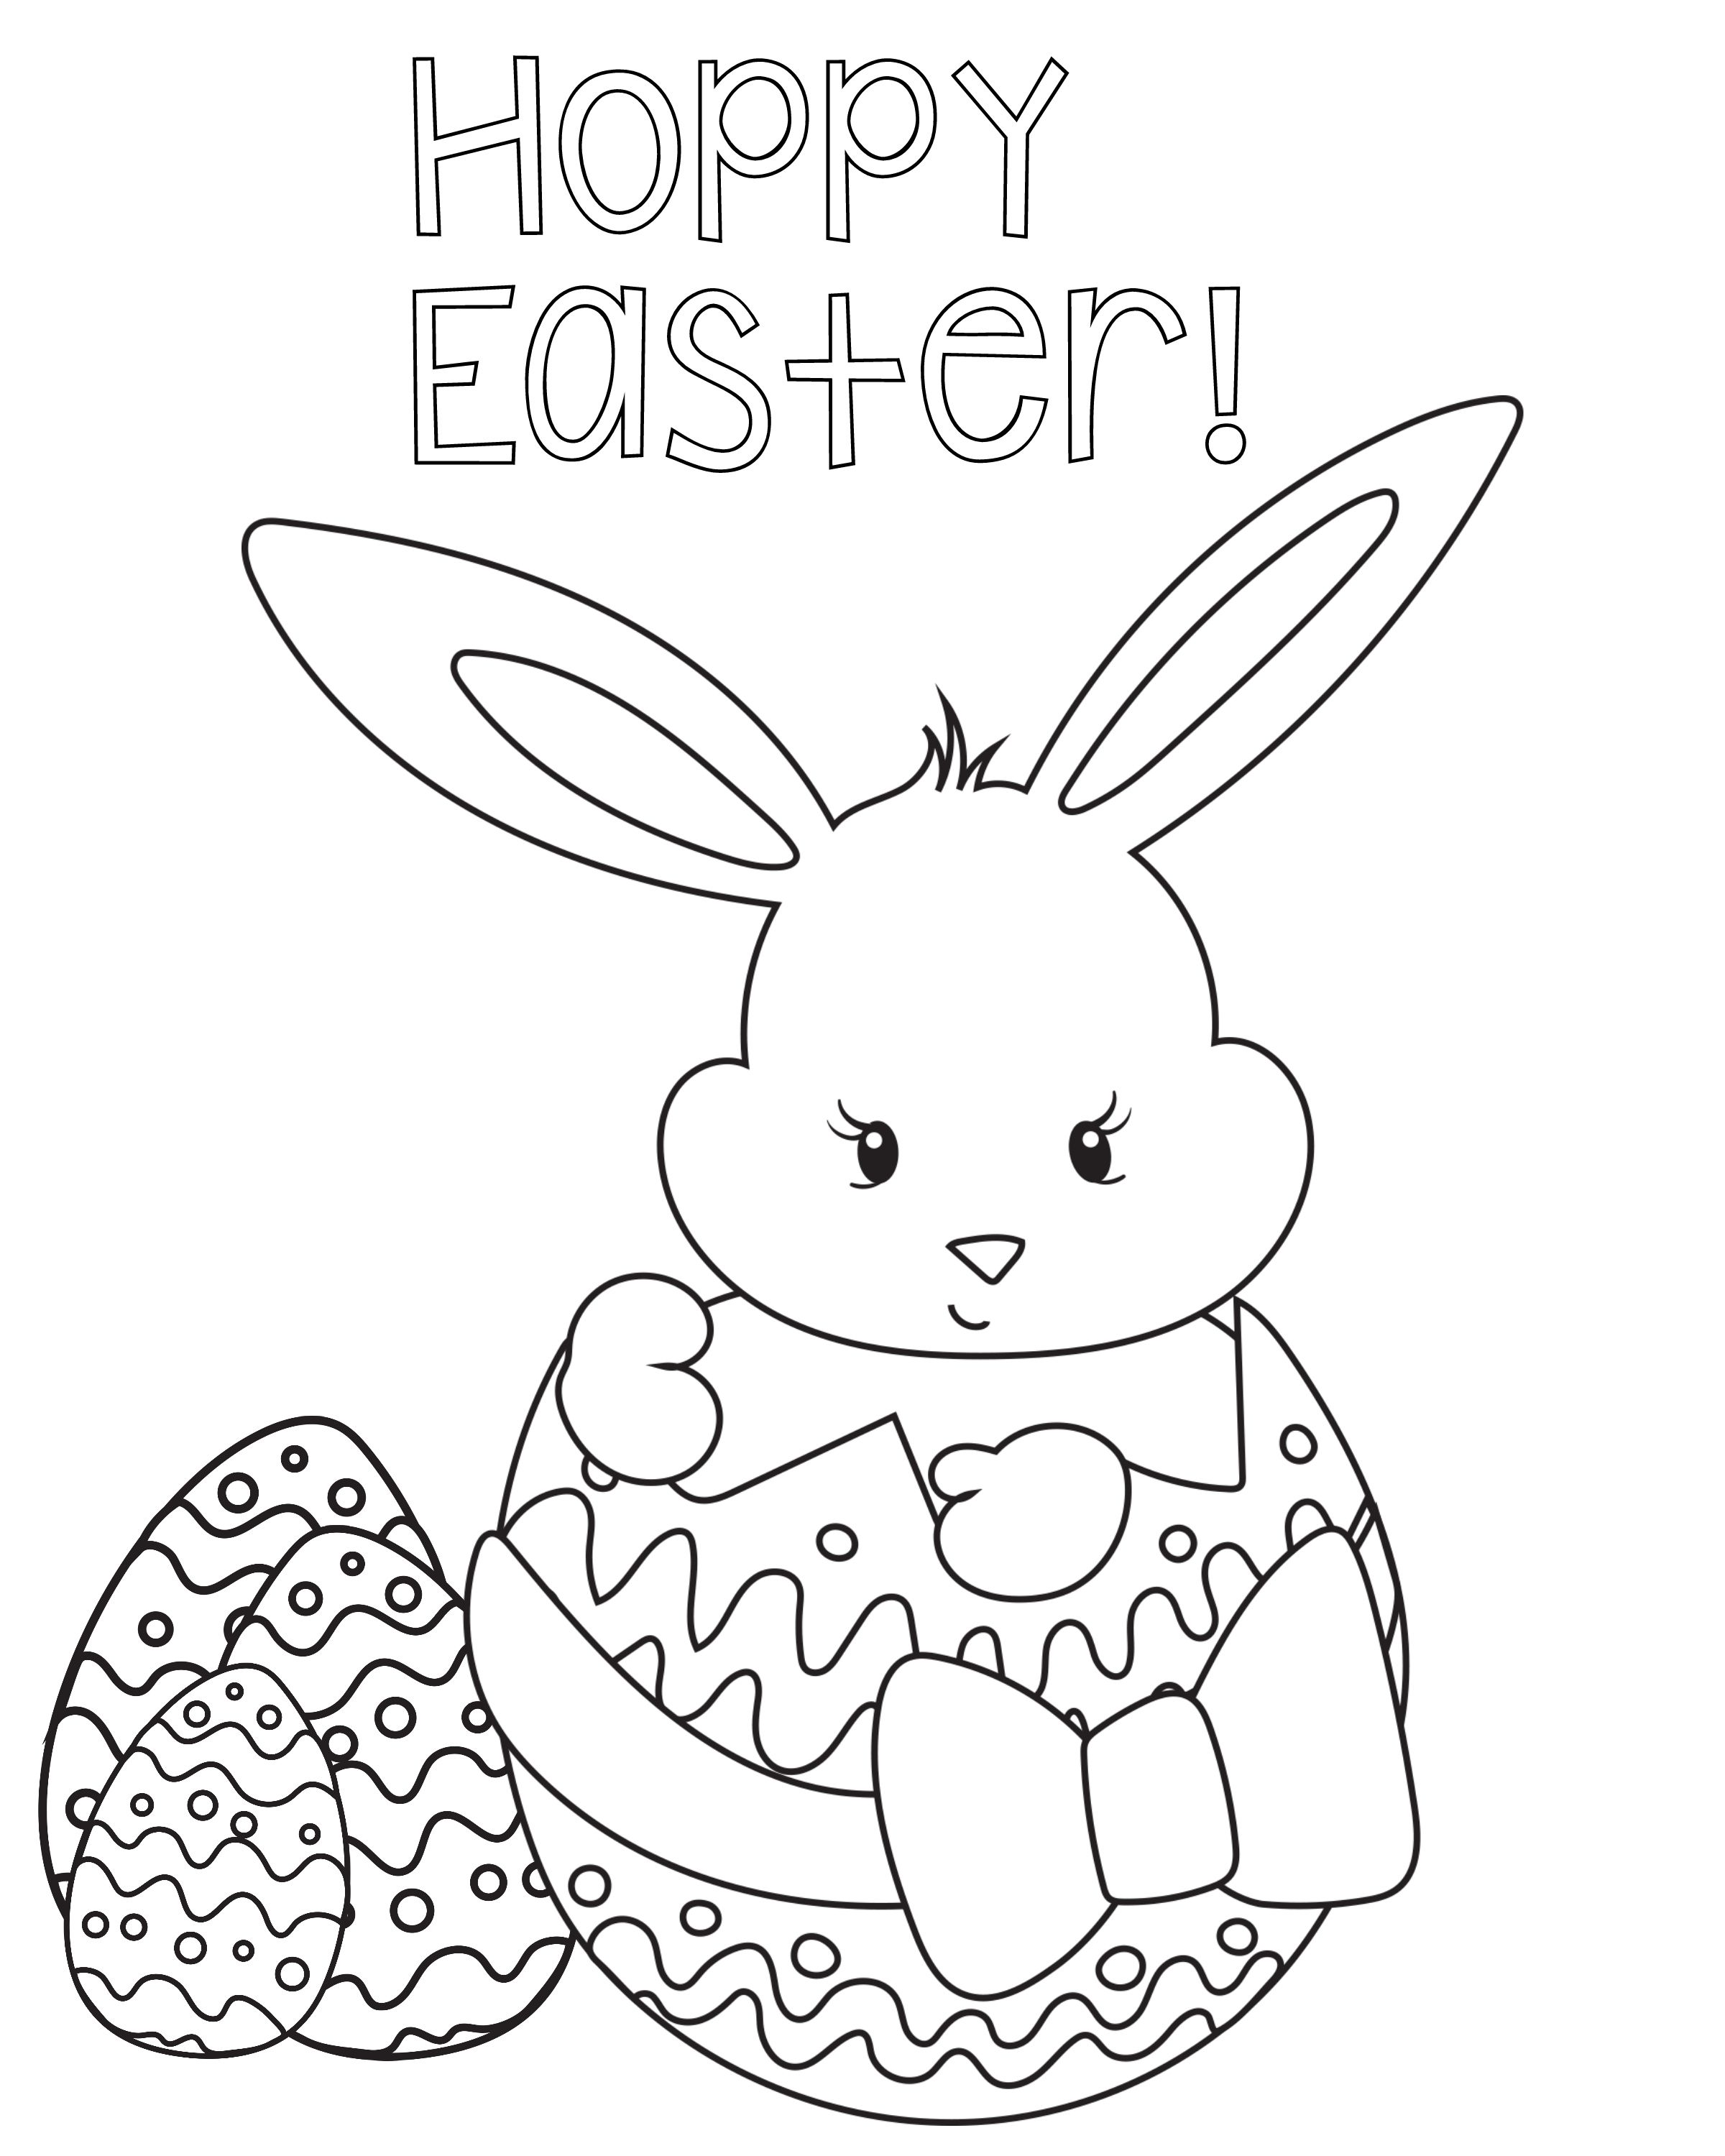 Easter Coloring Pages for Kids Easter bunny colouring